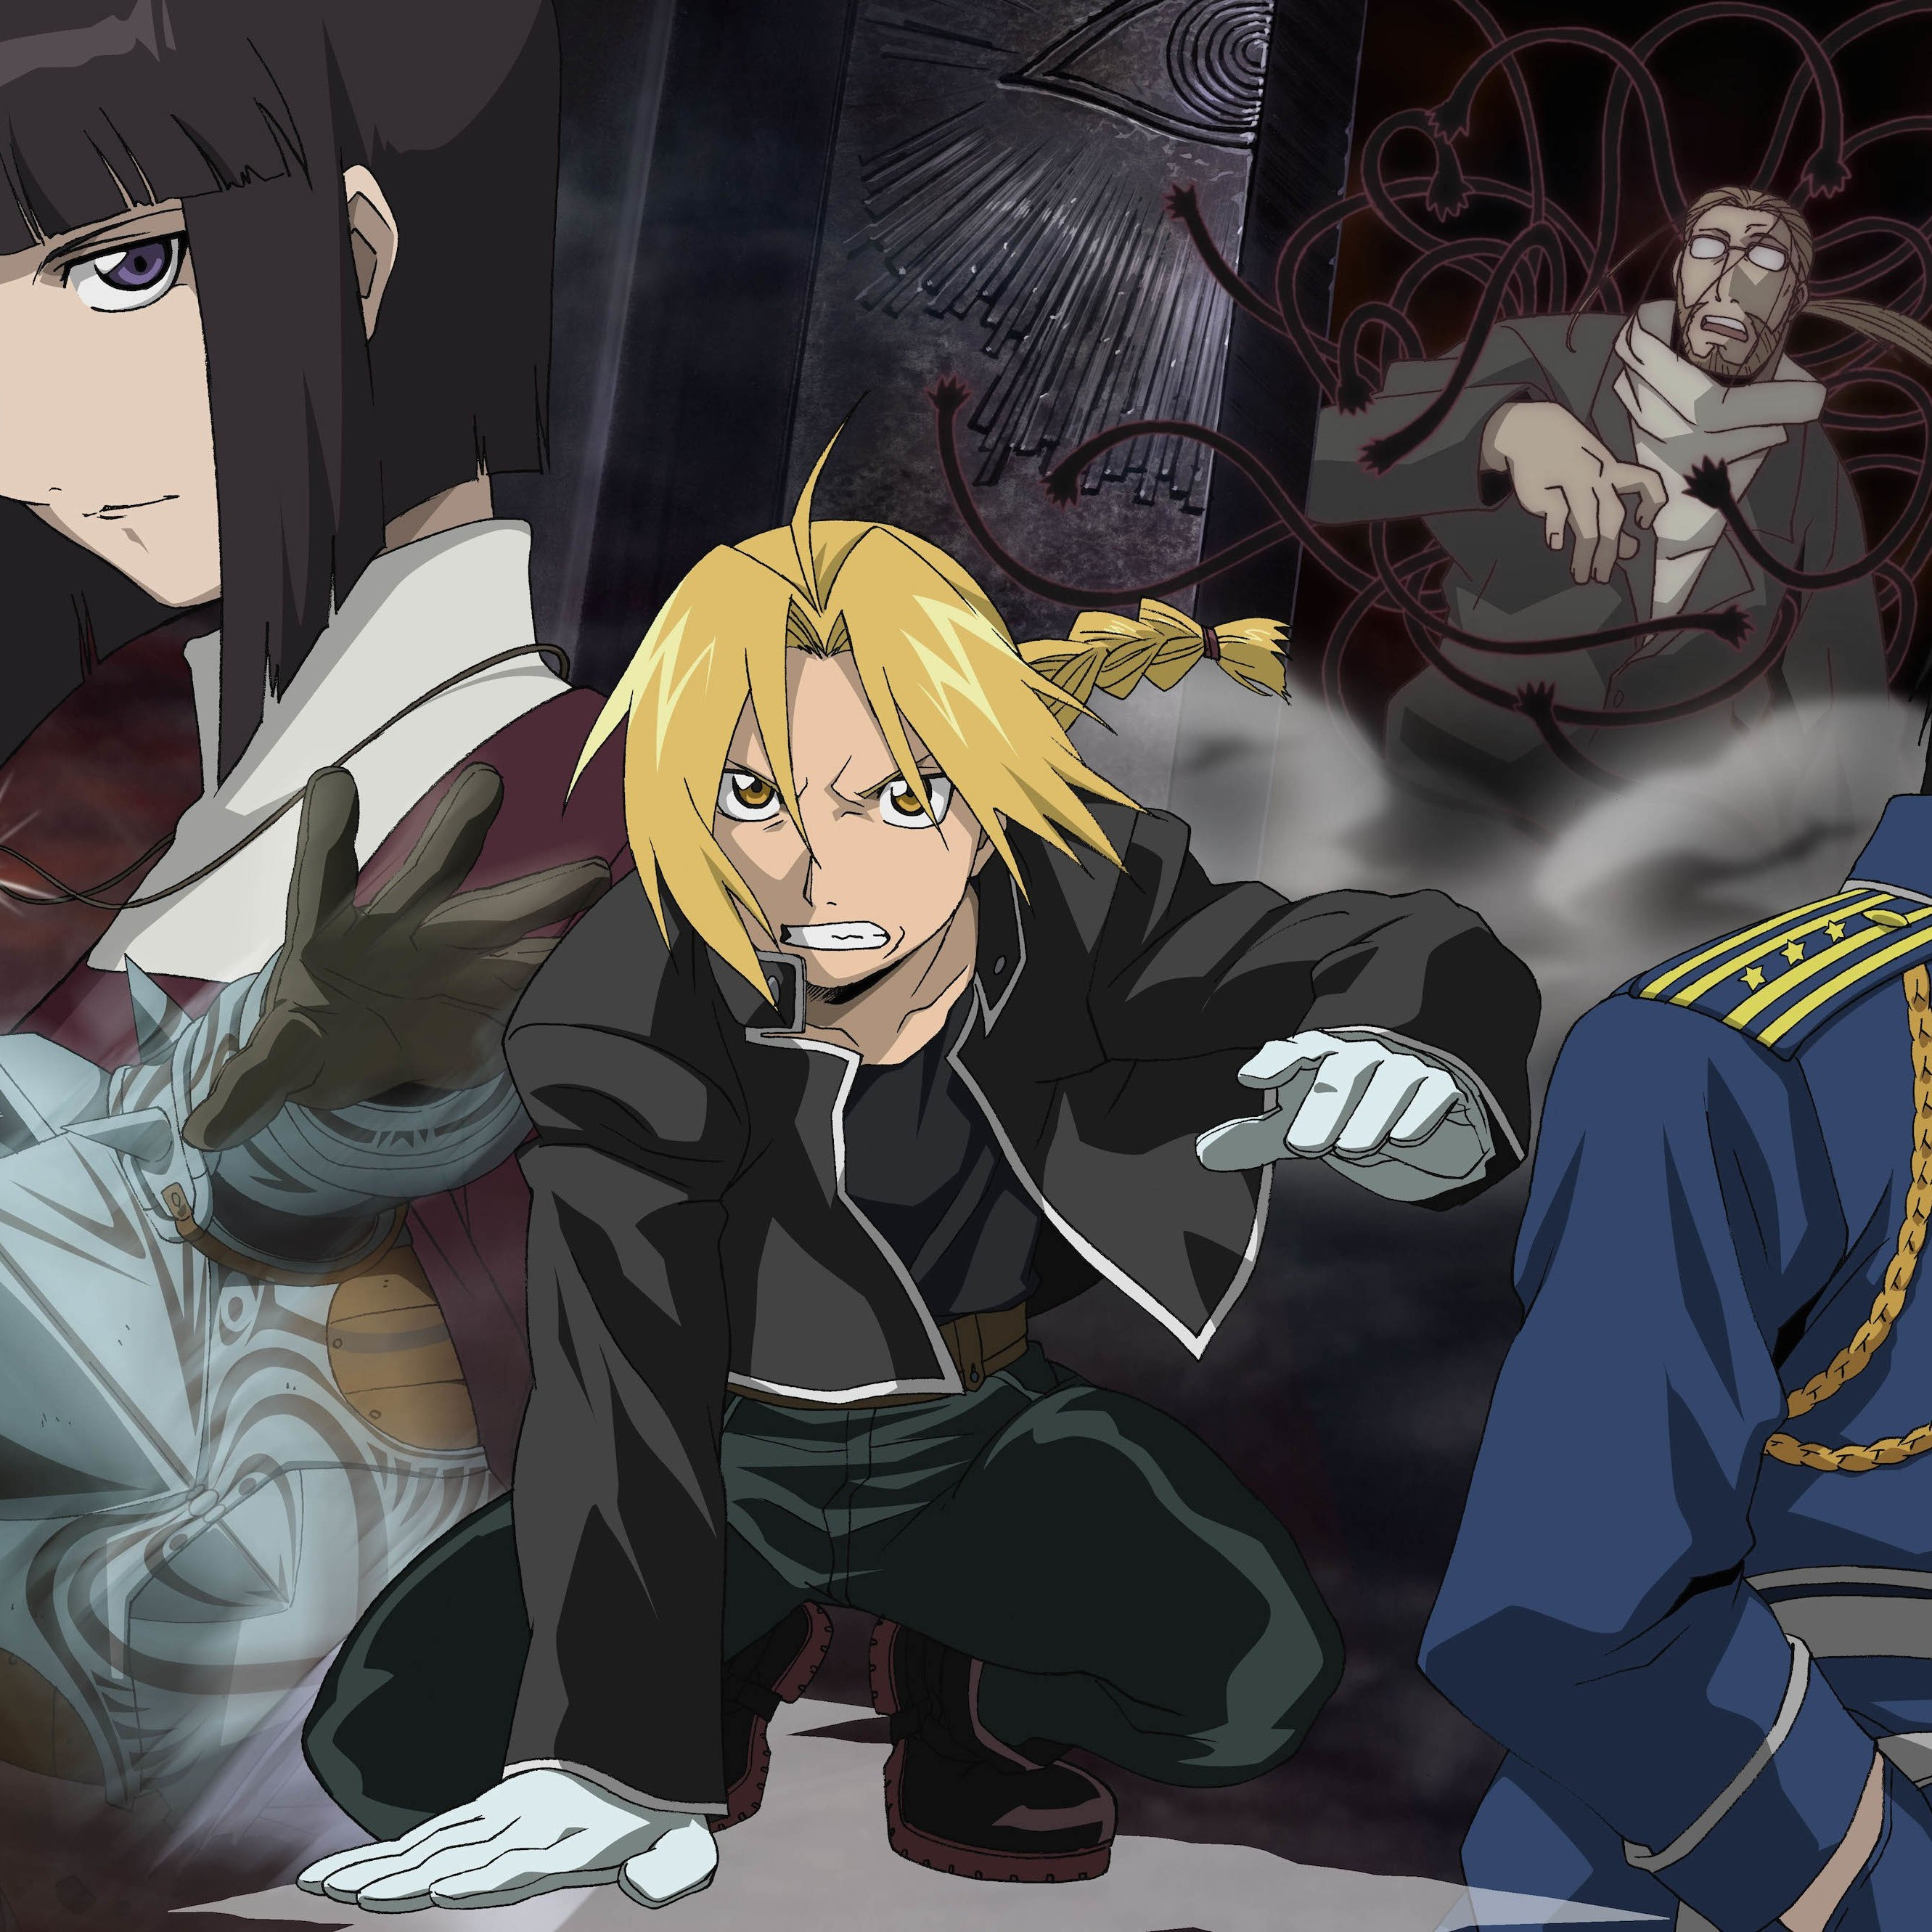 Fullmetal Alchemist Wallpaper for Apple iPhone 6 Plus